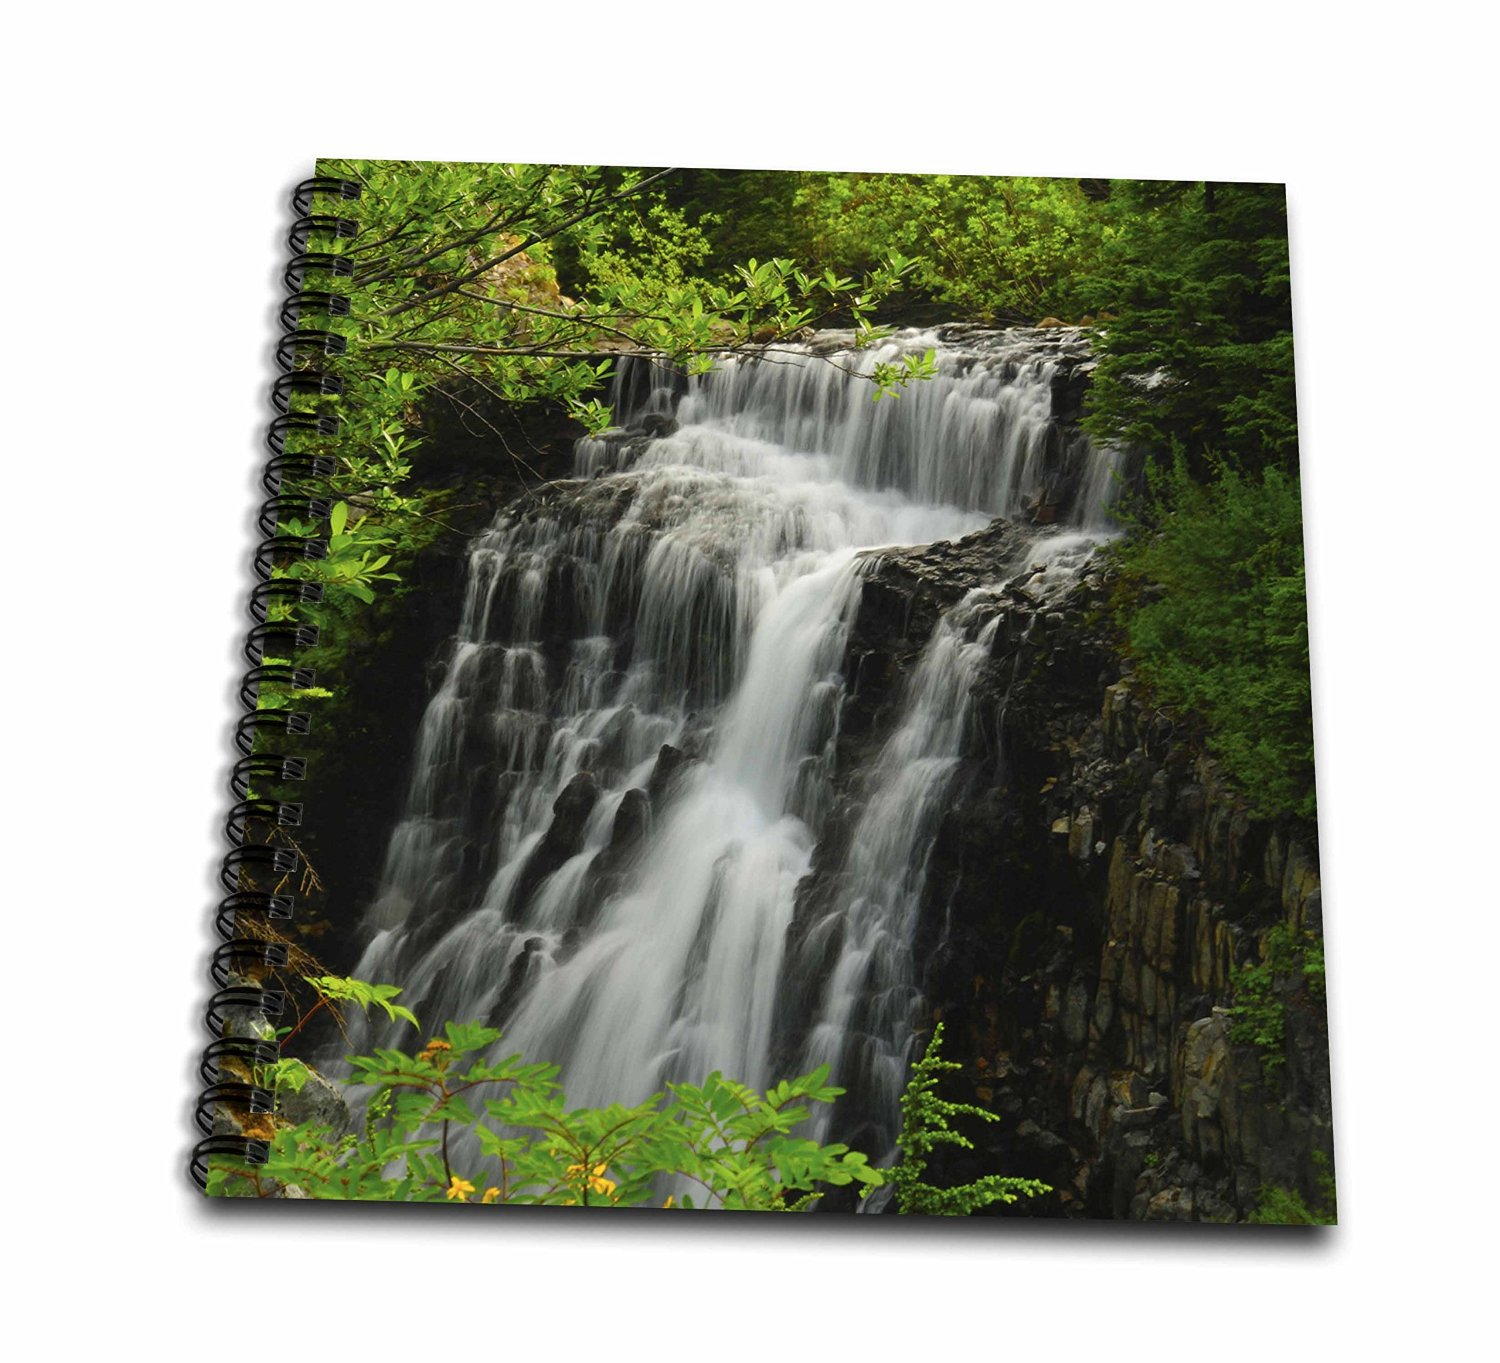 Danita Delimont - Waterfalls - Galena Creek Falls, Waterfalls, Washington, USA - US48 MHE0041 - Michel Hersen - Memory Book 12 x 12 inch (db_148383_2)